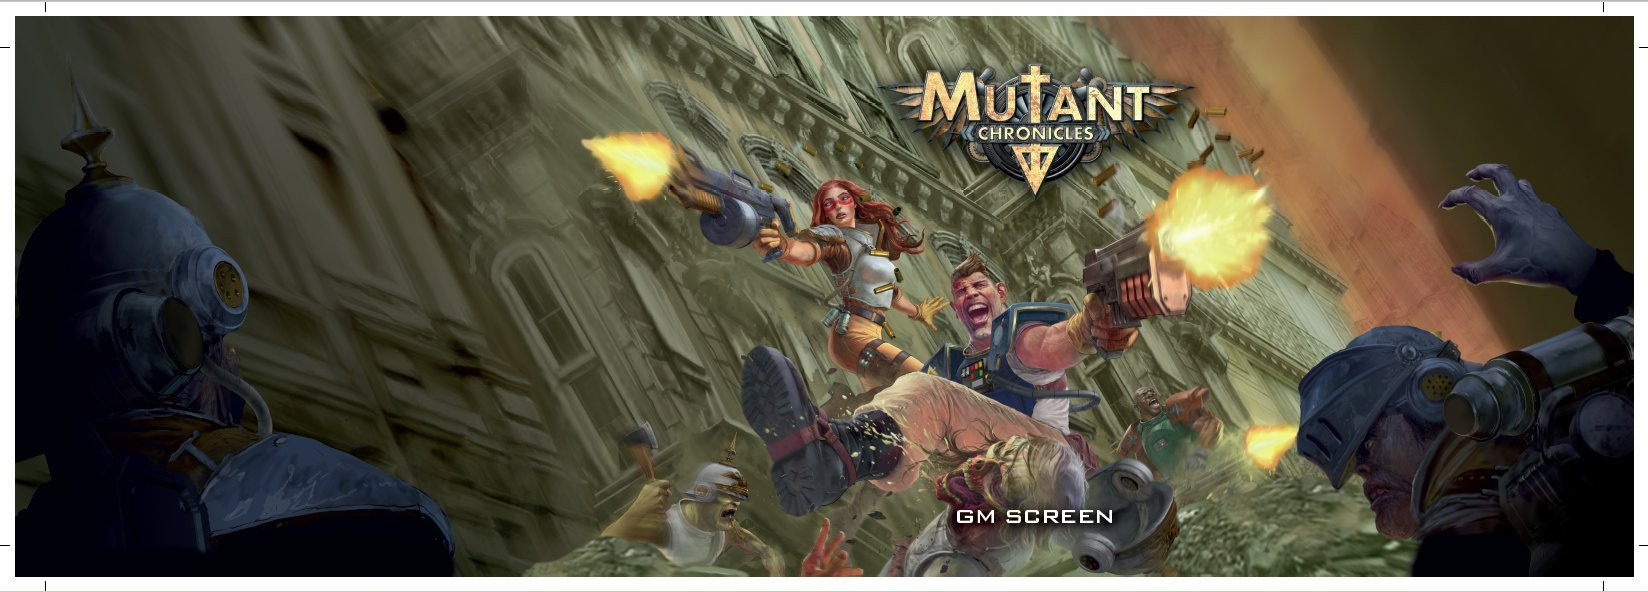 GM Screen: Mutant Chronicles -  Modiphius Entertainment